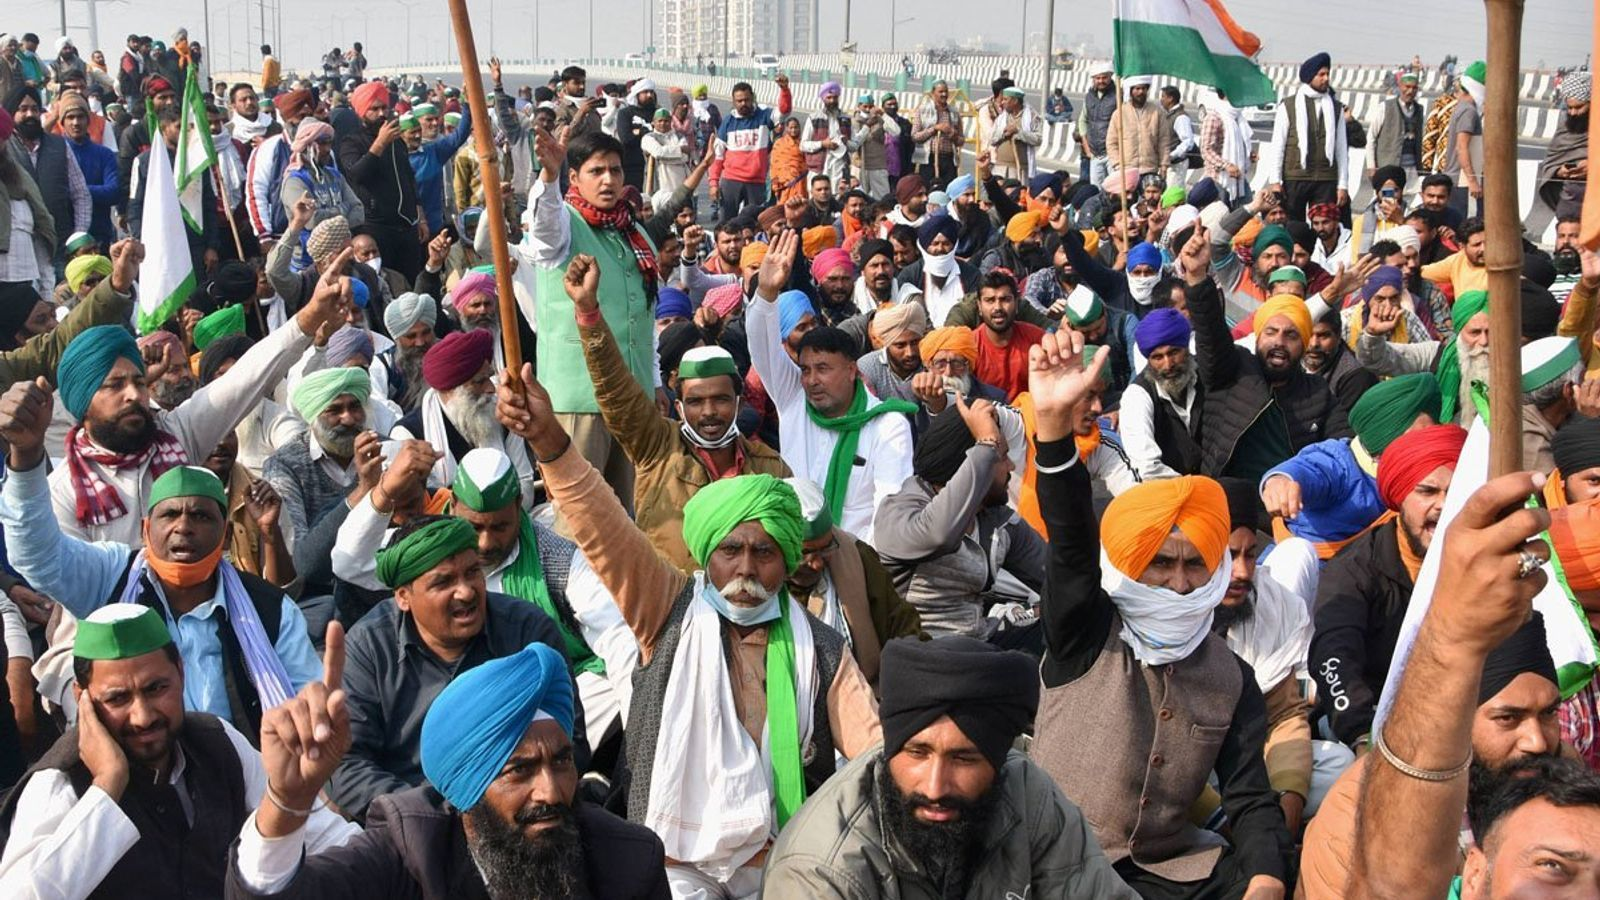 Telangana High Court Directs Police Commissioner To Permit Farmers Rally In Hyderabad On Republic Day